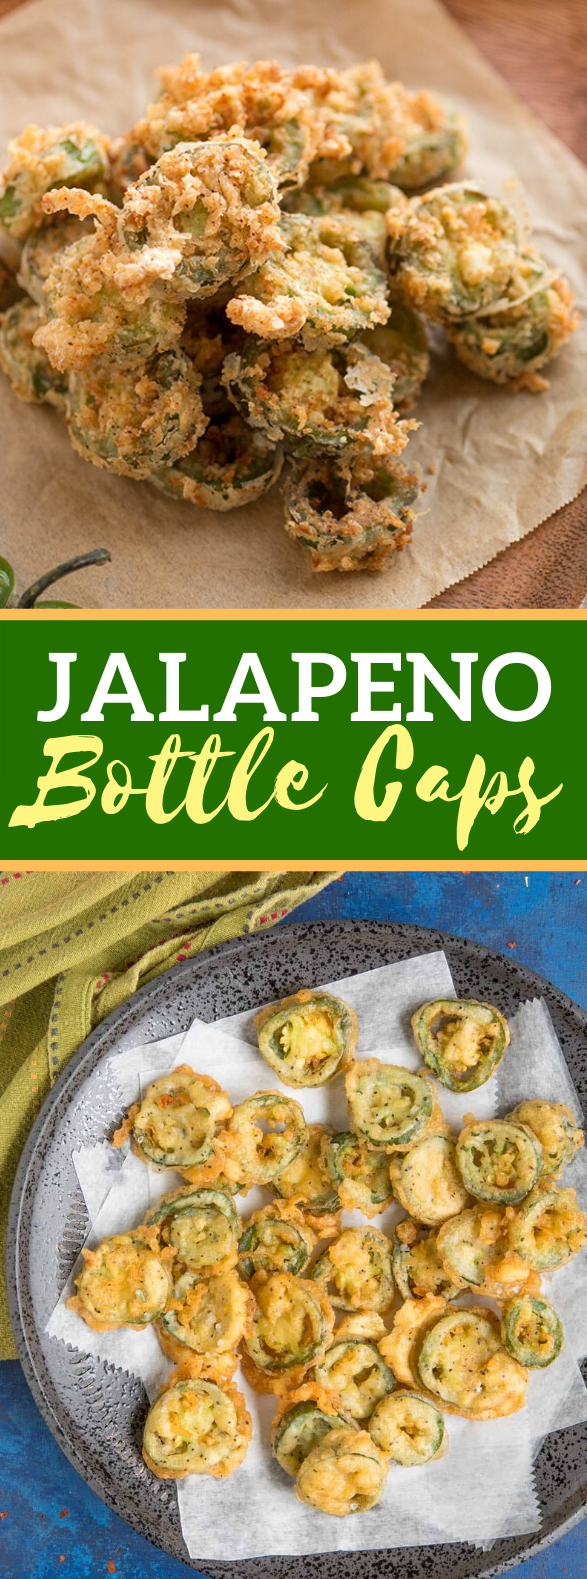 JALAPENO BOTTLE CAPS #appetizers #vegetarian